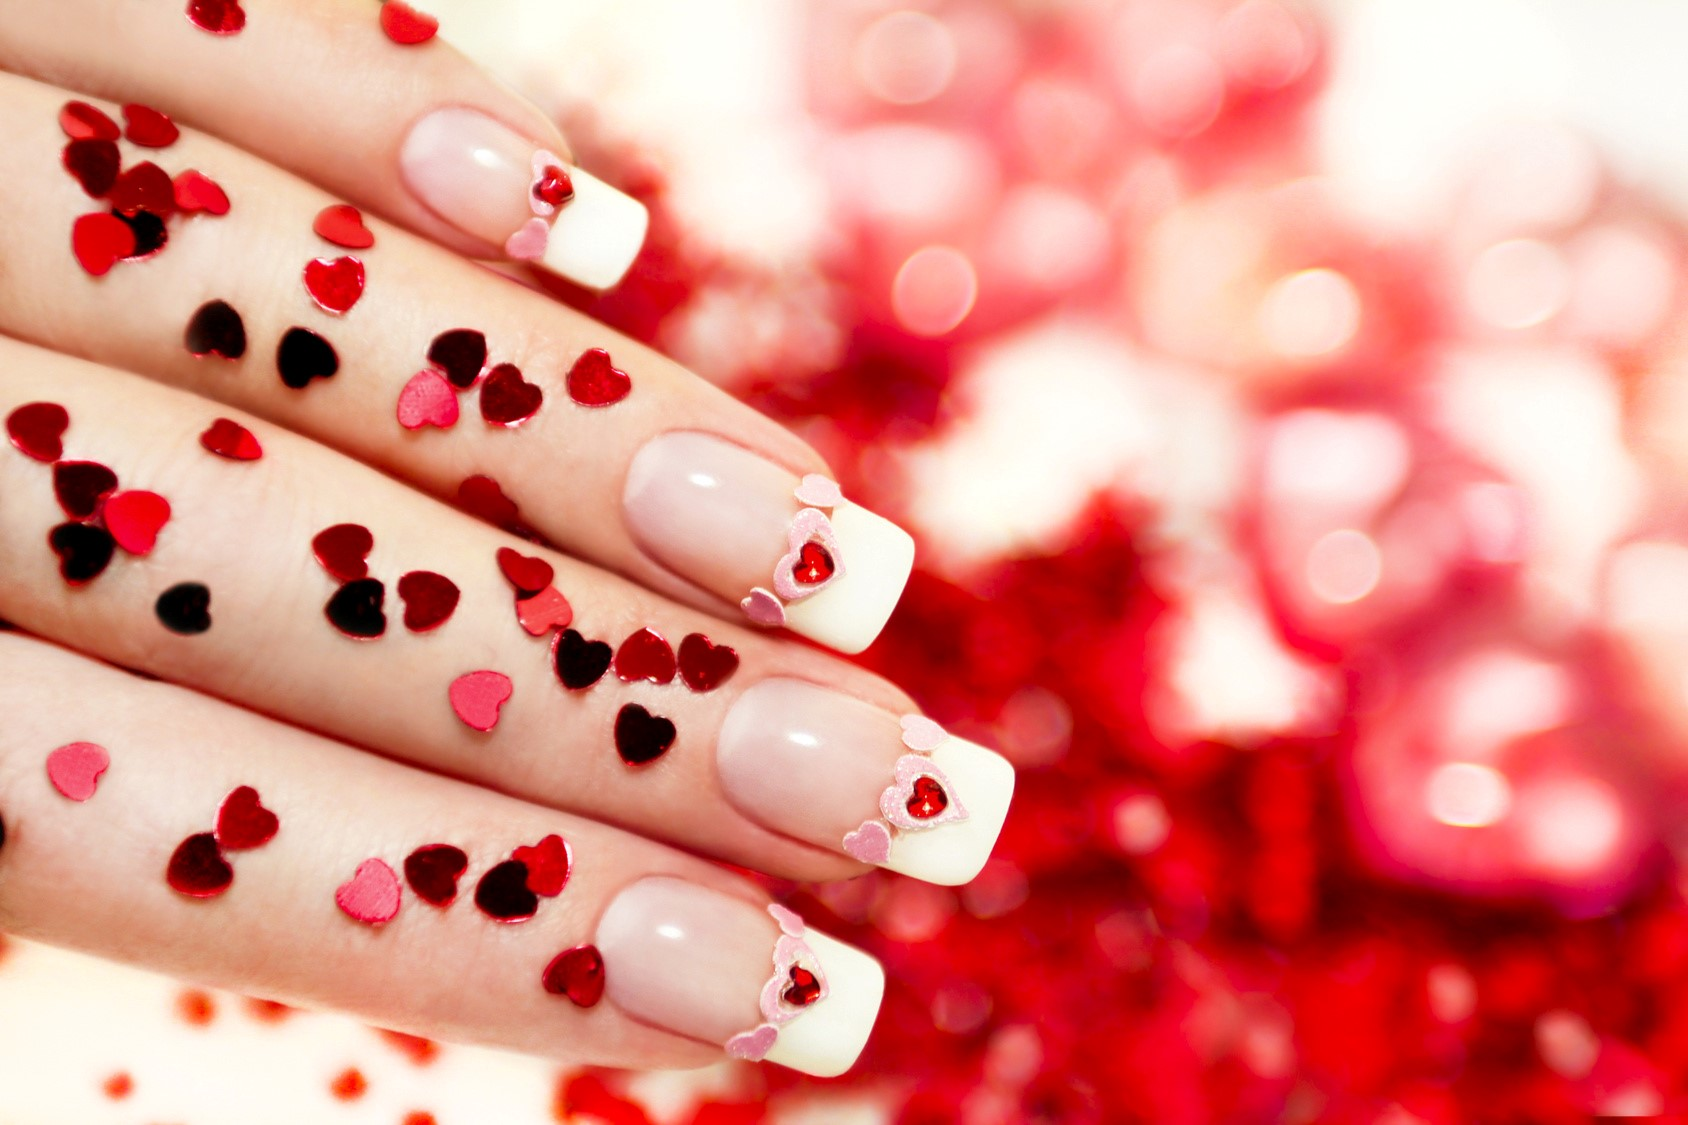 Magic Nails Spa – Near West Side Chamber of Commerce